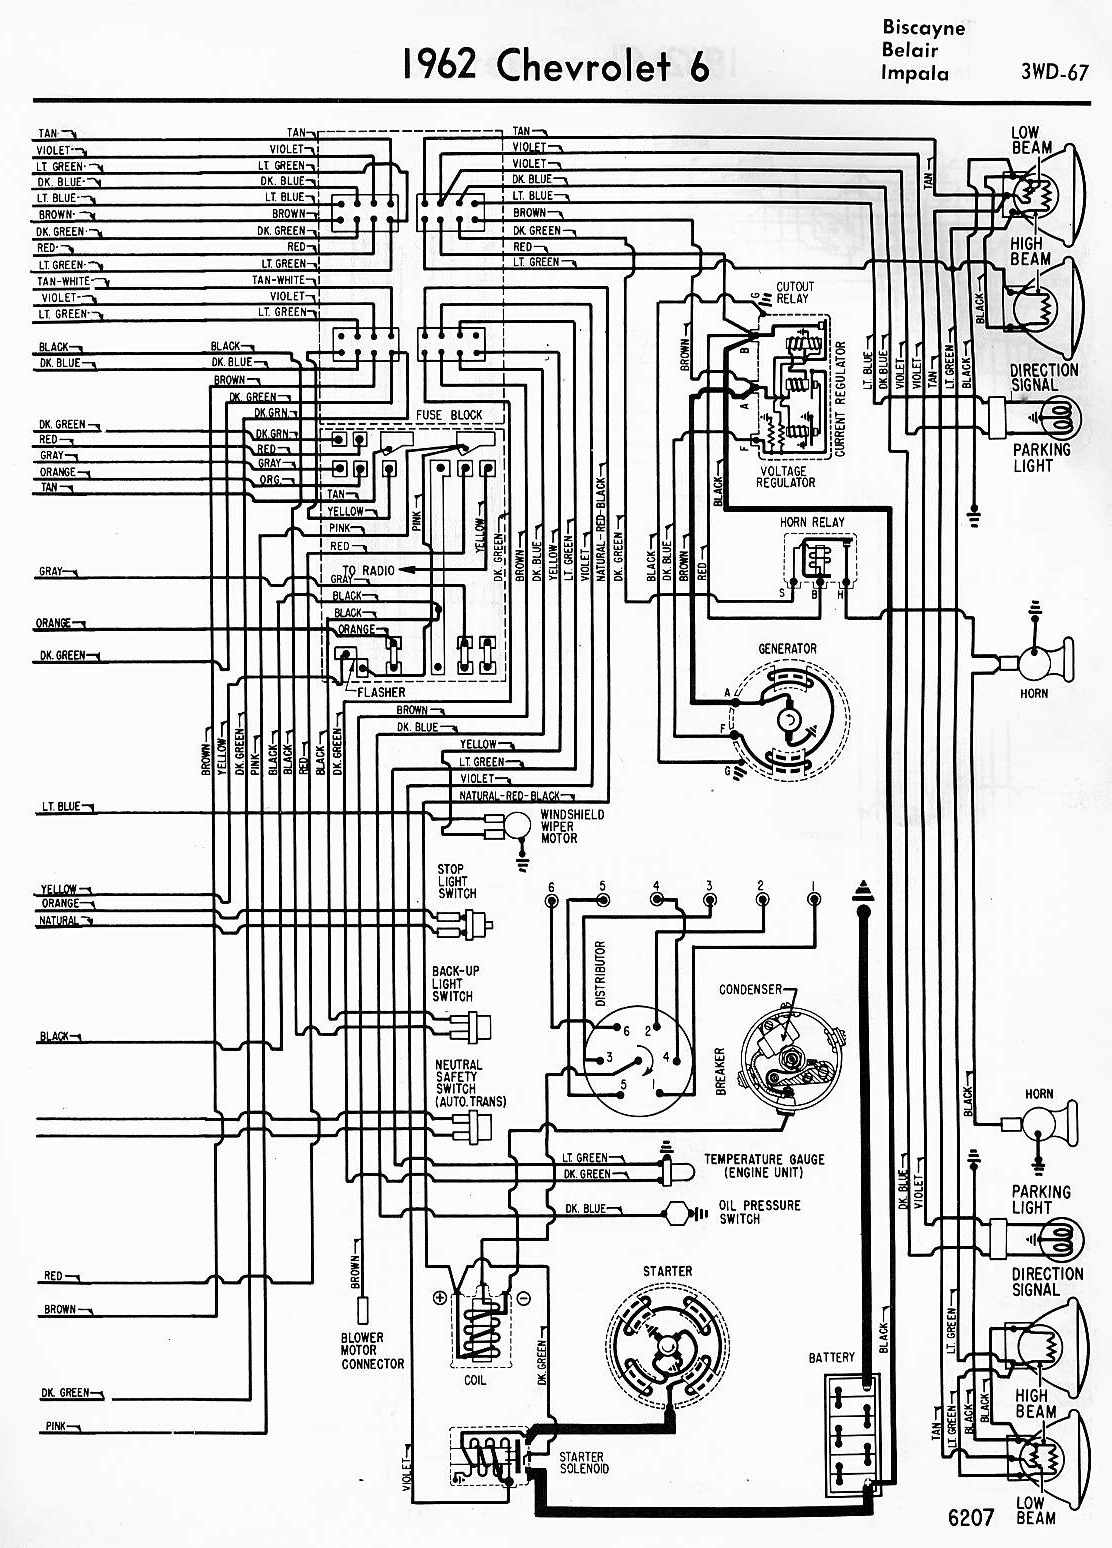 Electrical+Wiring+Diagram+Of+1964+Chevrolet+6 electrical wiring diagram of 1962 chevrolet 6 all about wiring 64 impala tail light wiring diagram at webbmarketing.co